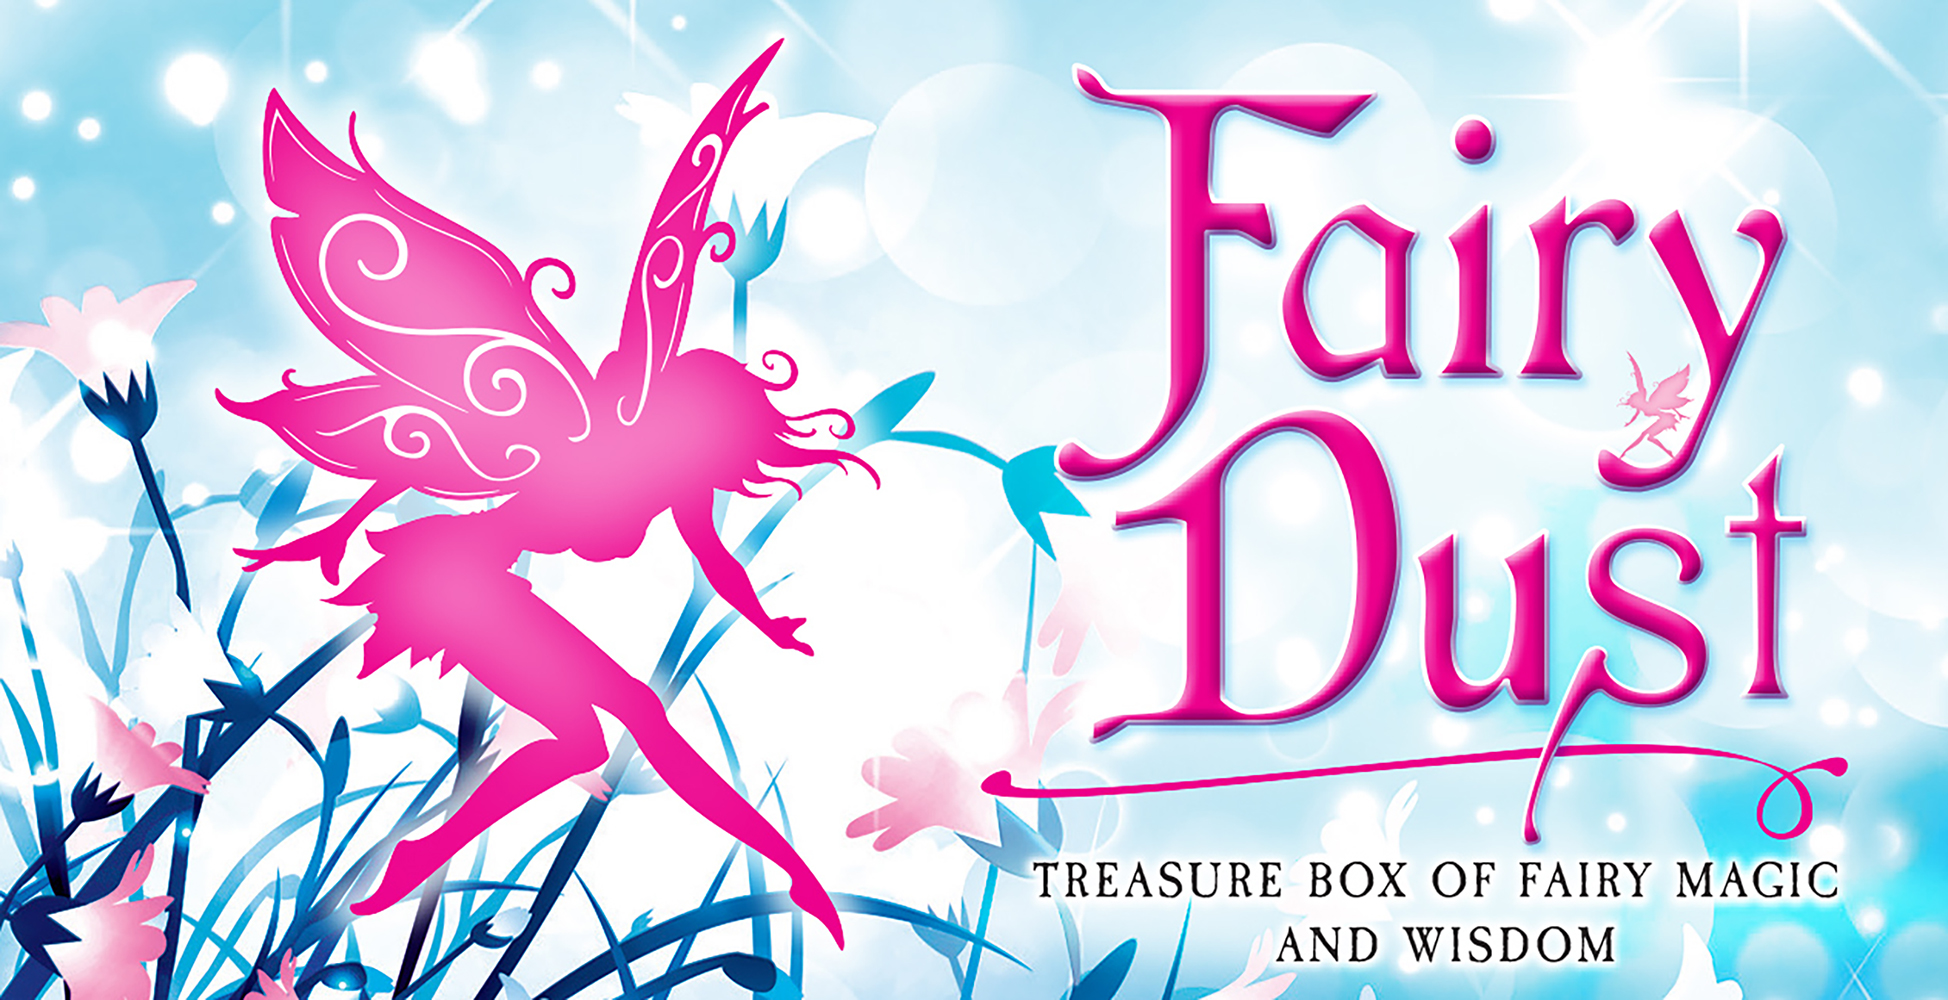 Oracle kits fairy dust cards a treasure box of fairy magic and wisdom 1595 as above and so below ancient fairy wisdom flows our pockets full of magic and dreams fandeluxe Choice Image